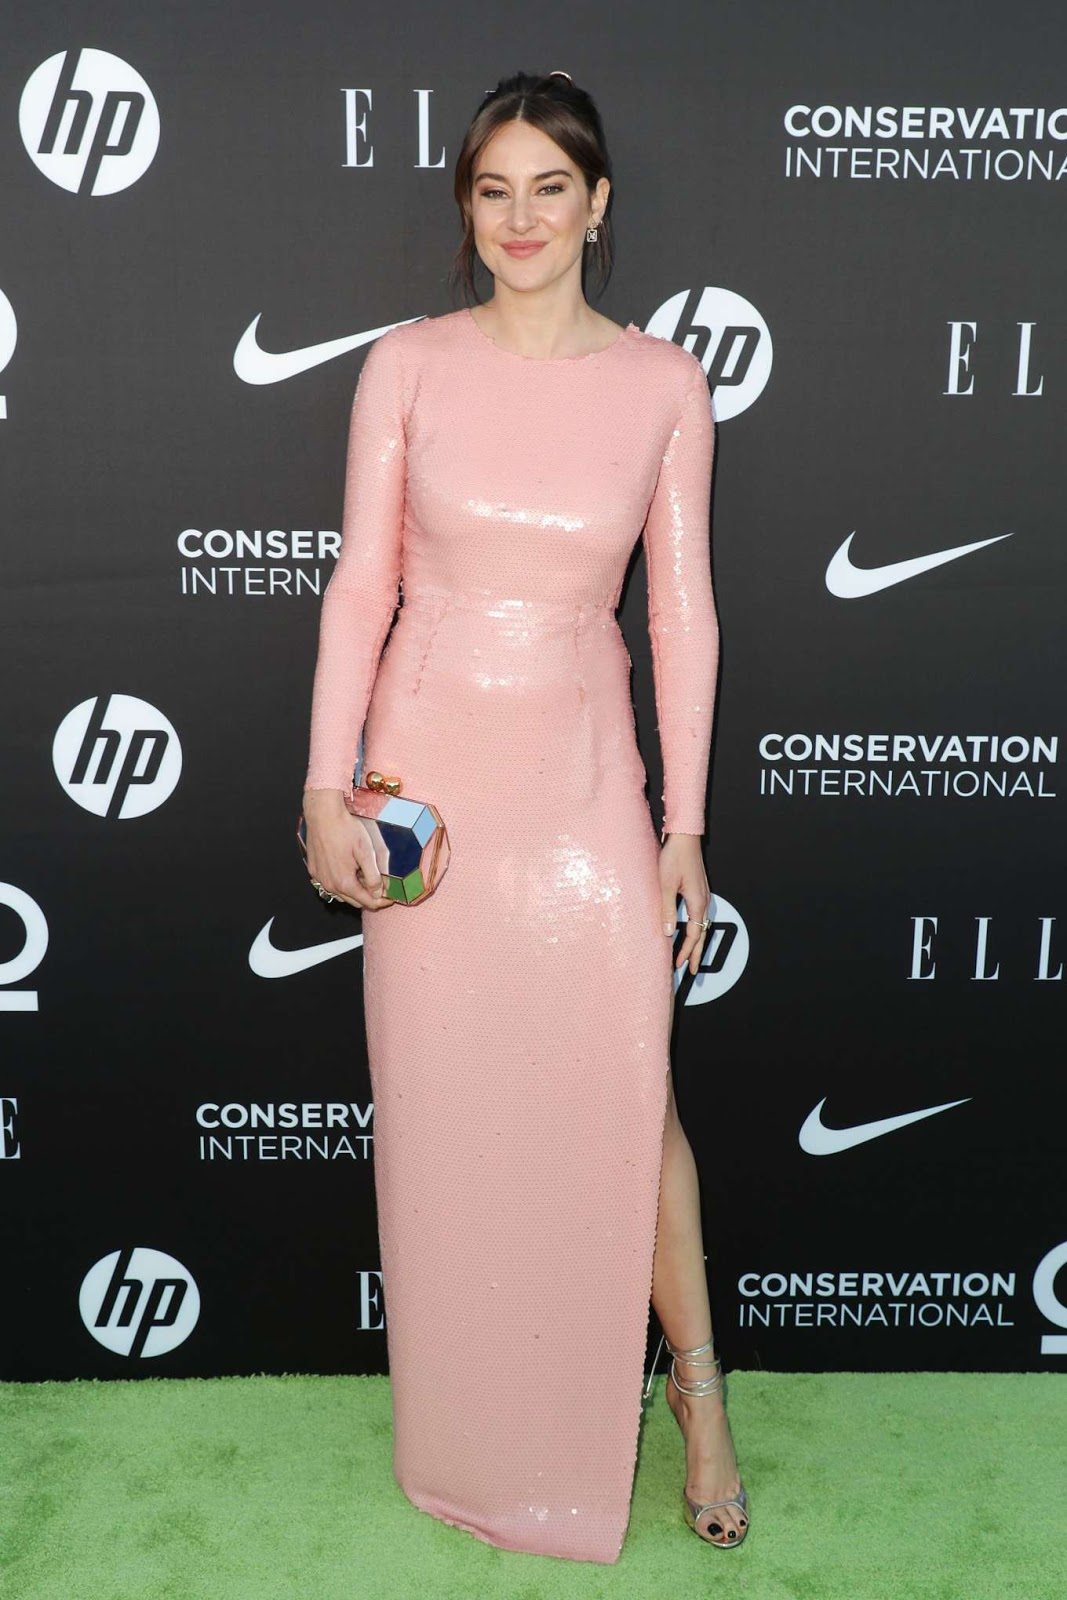 Shailene Woodley glistens in pink at the Women in Conservation Event in LA